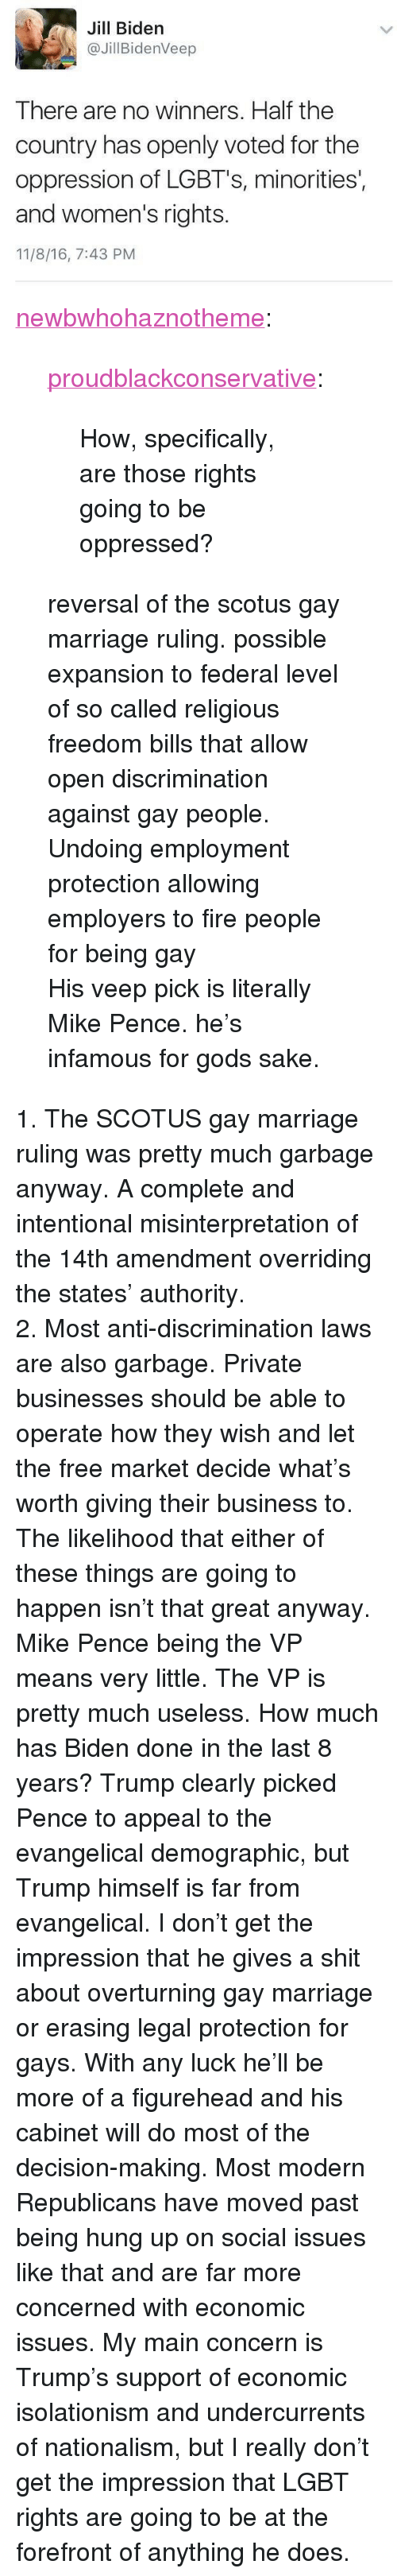 """Fire, Lgbt, and Marriage: Jill Bidern  @JillBidenVeep  There are no winners. Half the  country has openly voted for the  oppression of LGBT's, minorities'  and women's rights.  11/8/16, 7:43 PM <p><a href=""""http://newbwhohaznotheme.tumblr.com/post/152960470526/how-specifically-are-those-rights-going-to-be"""" class=""""tumblr_blog"""">newbwhohaznotheme</a>:</p>  <blockquote><p><a href=""""https://proudblackconservative.tumblr.com/post/152960213624/how-specifically-are-those-rights-going-to-be"""" class=""""tumblr_blog"""">proudblackconservative</a>:</p>  <blockquote><p>How, specifically, are those rights going to be oppressed?</p></blockquote>  <p>reversal of the scotus gay marriage ruling. possible expansion to federal level of so called religious freedom bills that allow open discrimination against gay people. Undoing employment protection allowing employers to fire people for being gay </p><p>His veep pick is literally Mike Pence. he's infamous for gods sake.</p></blockquote>  <p>1. The SCOTUS gay marriage ruling was pretty much garbage anyway. A complete and intentional misinterpretation of the 14th amendment overriding the states' authority.</p><p>2. Most anti-discrimination laws are also garbage. Private businesses should be able to operate how they wish and let the free market decide what's worth giving their business to.</p><p>The likelihood that either of these things are going to happen isn't that great anyway. Mike Pence being the VP means very little. The VP is pretty much useless. How much has Biden done in the last 8 years? Trump clearly picked Pence to appeal to the evangelical demographic, but Trump himself is far from evangelical. I don't get the impression that he gives a shit about overturning gay marriage or erasing legal protection for gays. With any luck he'll be more of a figurehead and his cabinet will do most of the decision-making. Most modern Republicans have moved past being hung up on social issues like that and are far more concerned with economic issues. My"""